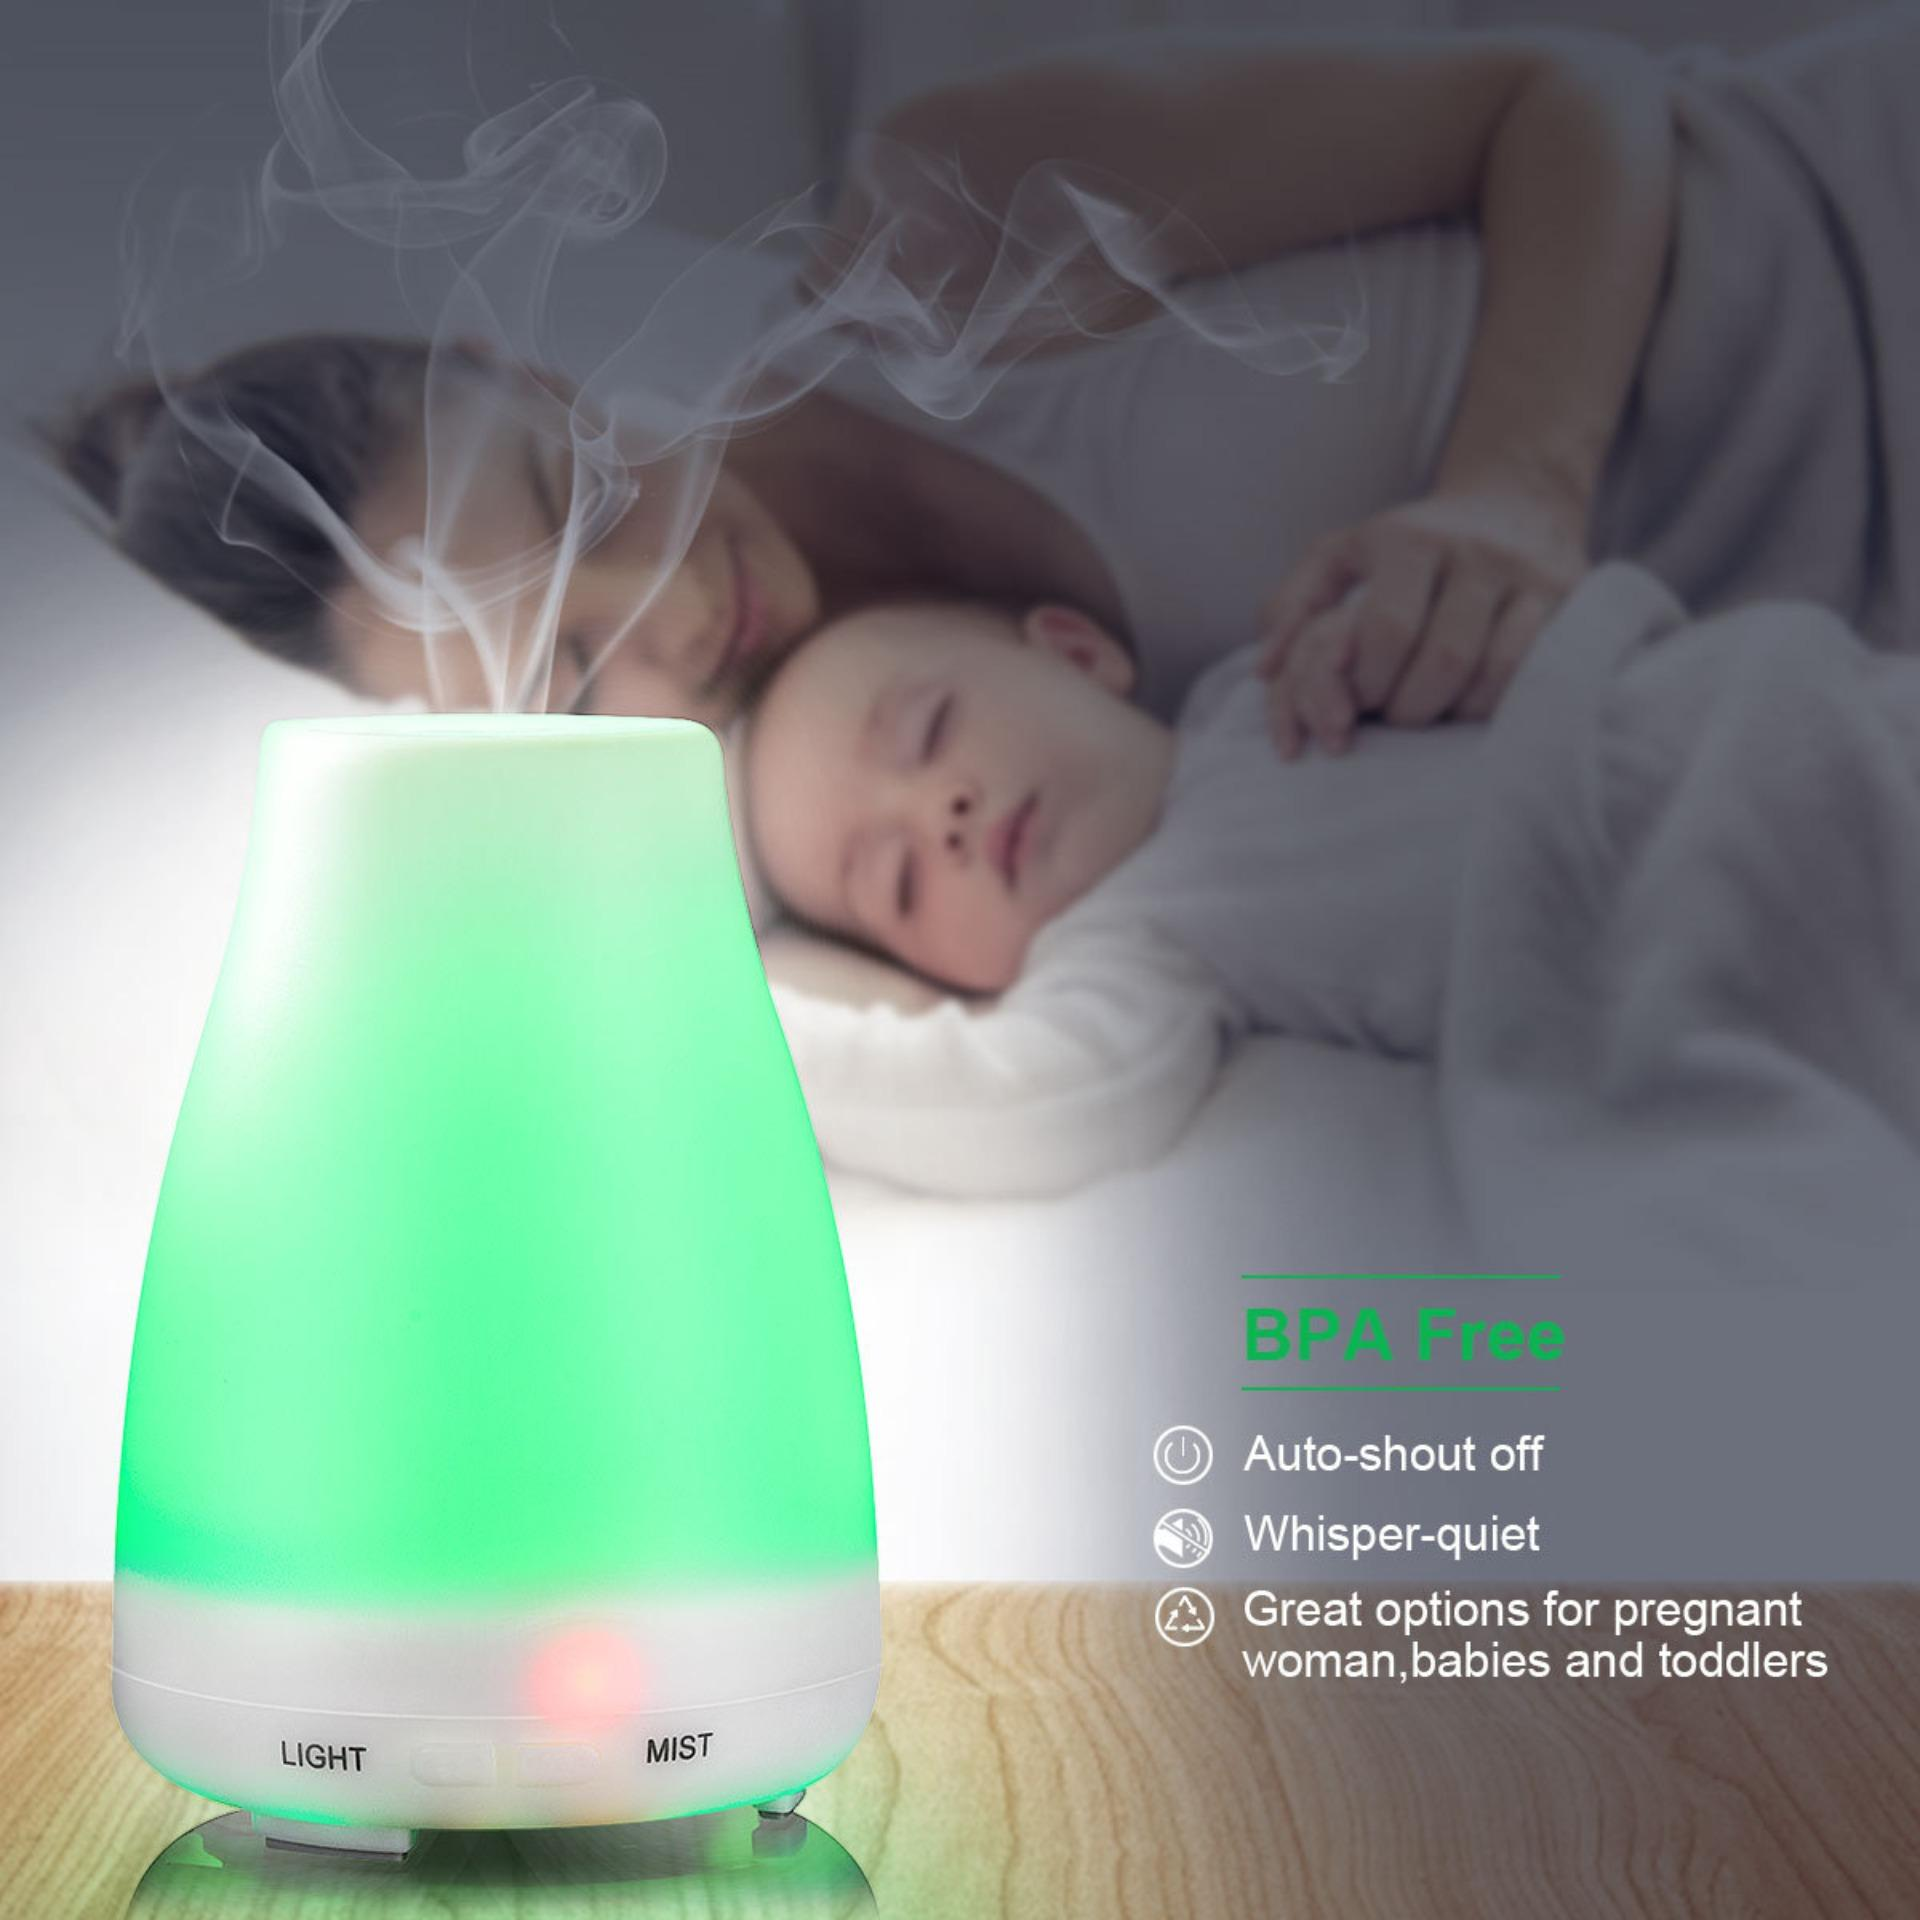 [1 Year Warranty] Air Humidifiers Ultrasonic Aroma Diffiusers Purifiers Cool Mist Humidifiers Essential Oil Aromatherapy Diffusers Machines Air Purifiers Treatment Mist Maker 100ml By Yh-Store.